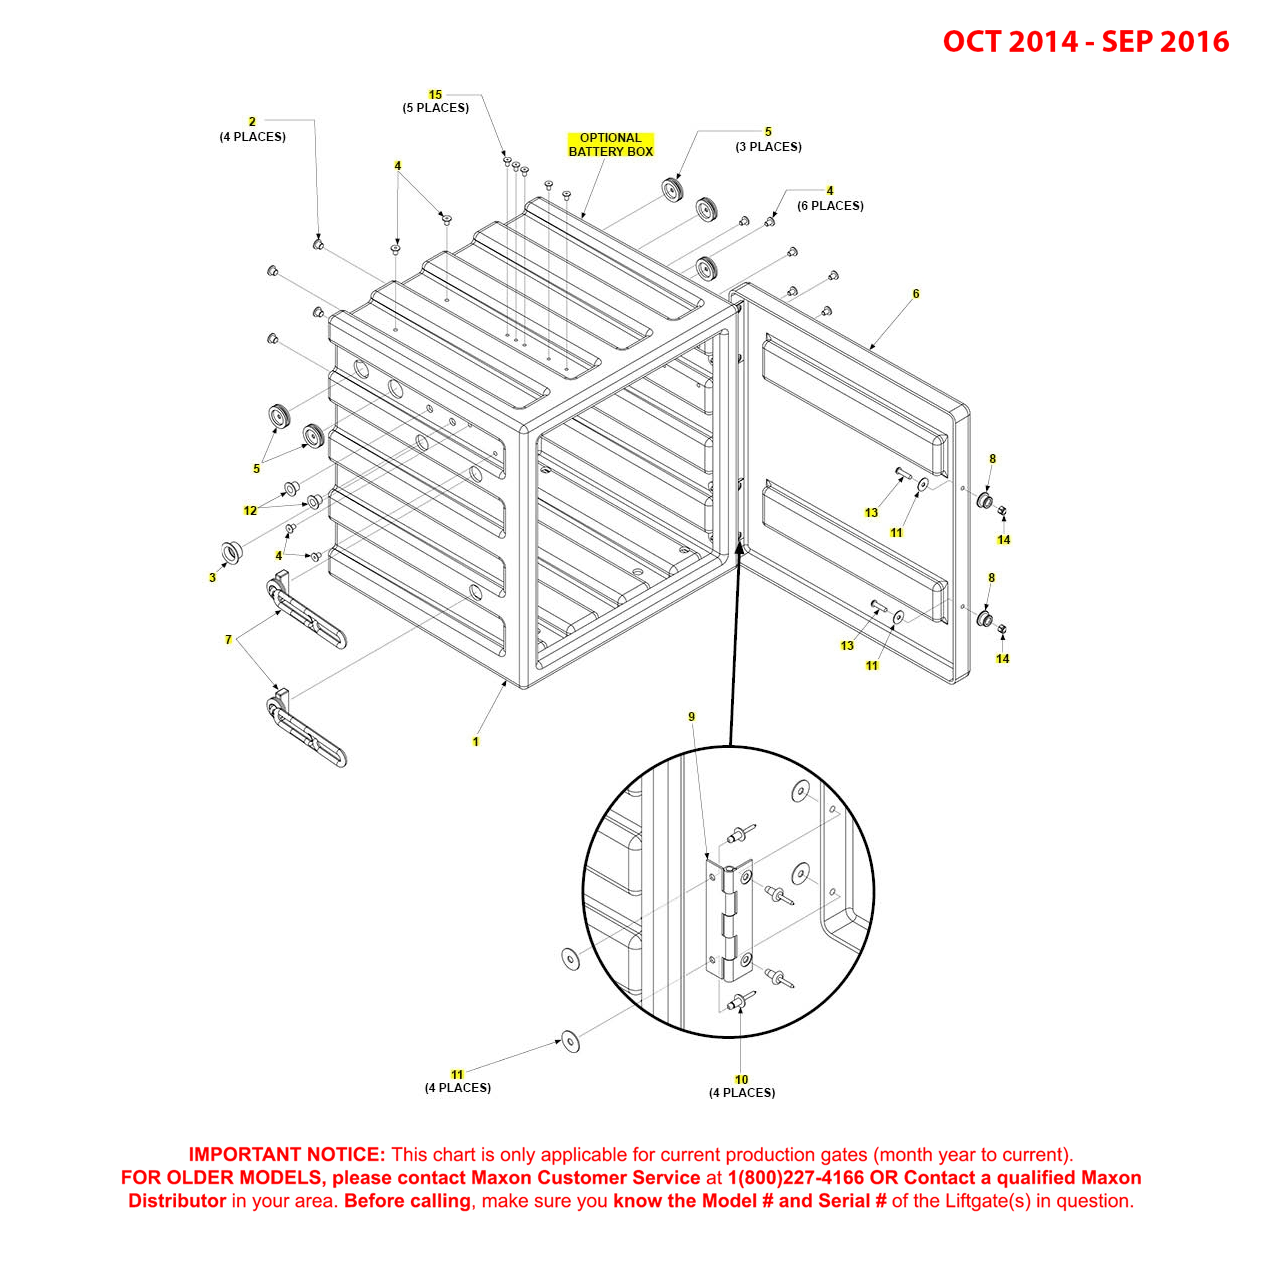 BMR (Oct 2014 - Sep 2016) Optional Battery Box Diagram